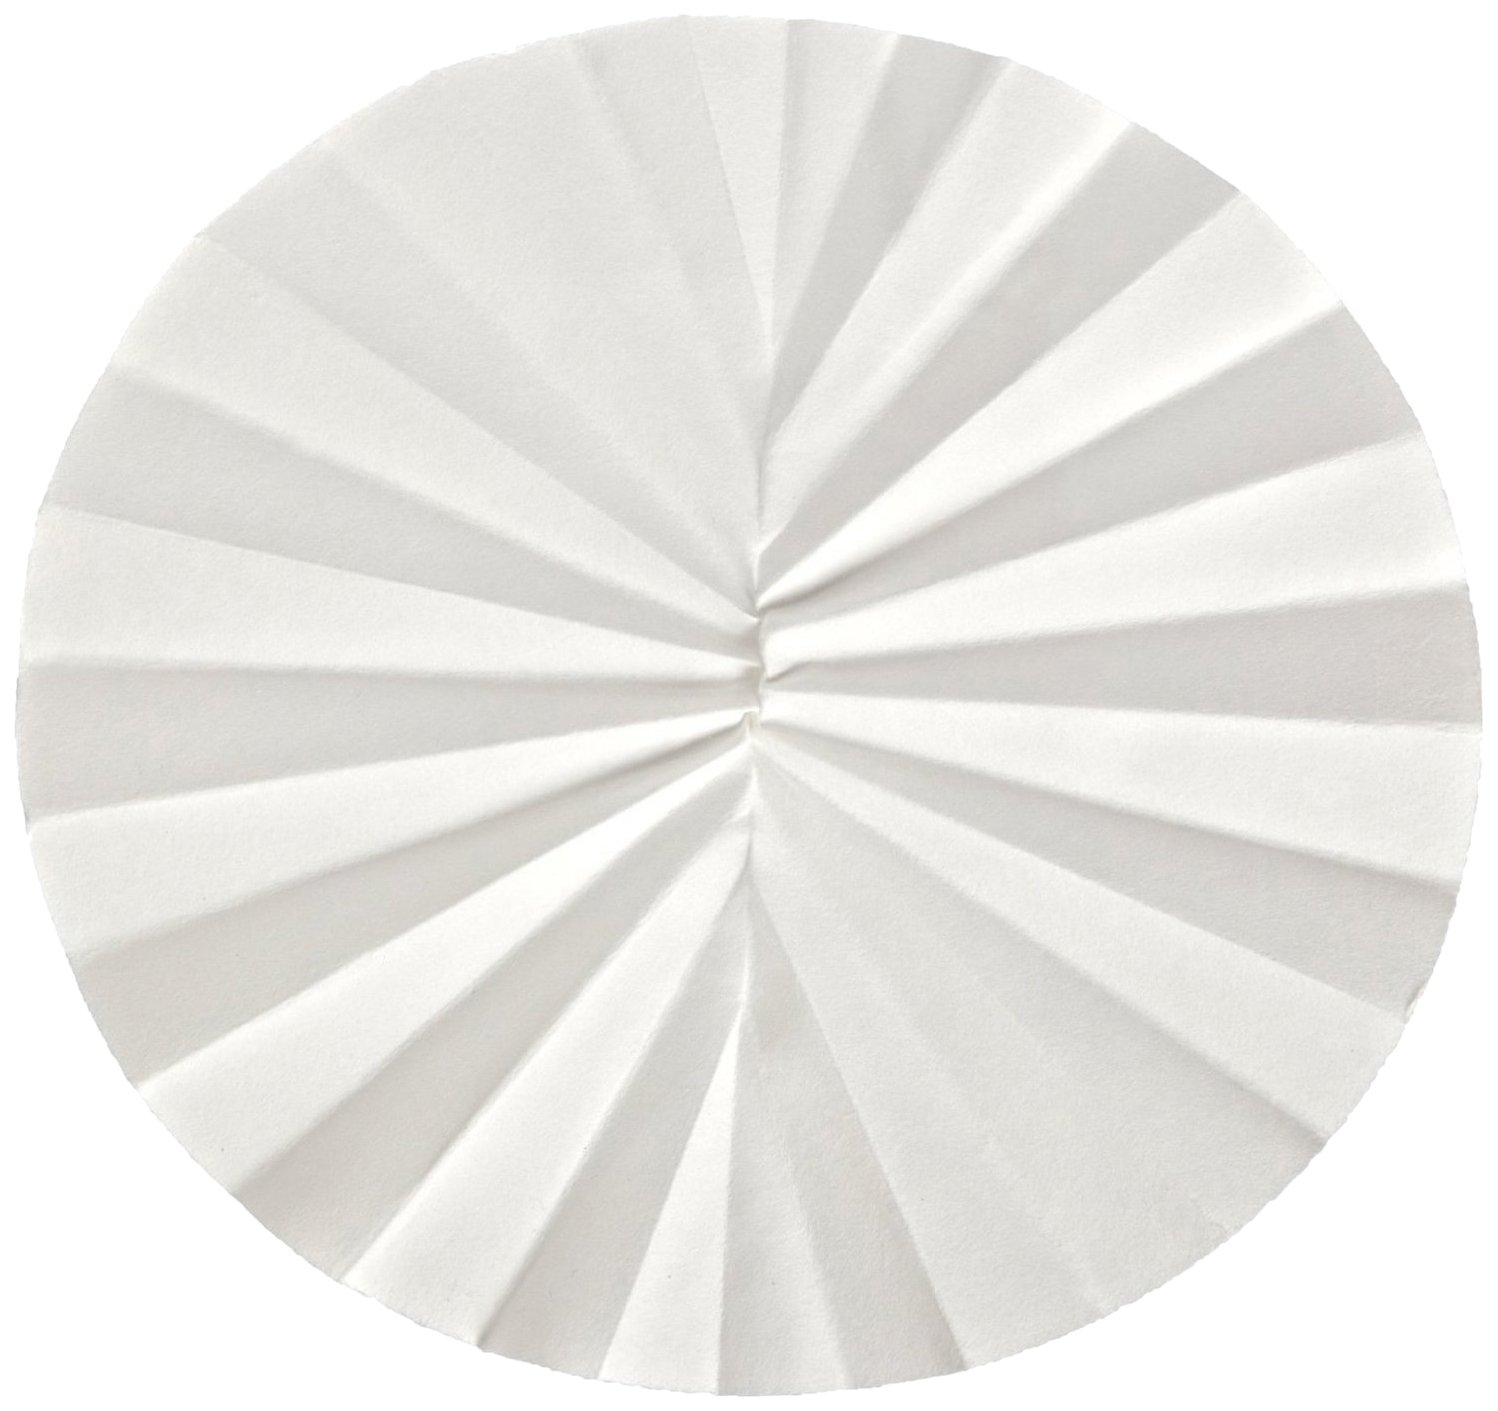 Ahlstrom 5130-1250 Pleated Filter Paper, 6 Micron, Rapid Flow, Grade 513, 12.5cm Diameter (Pack of 100)